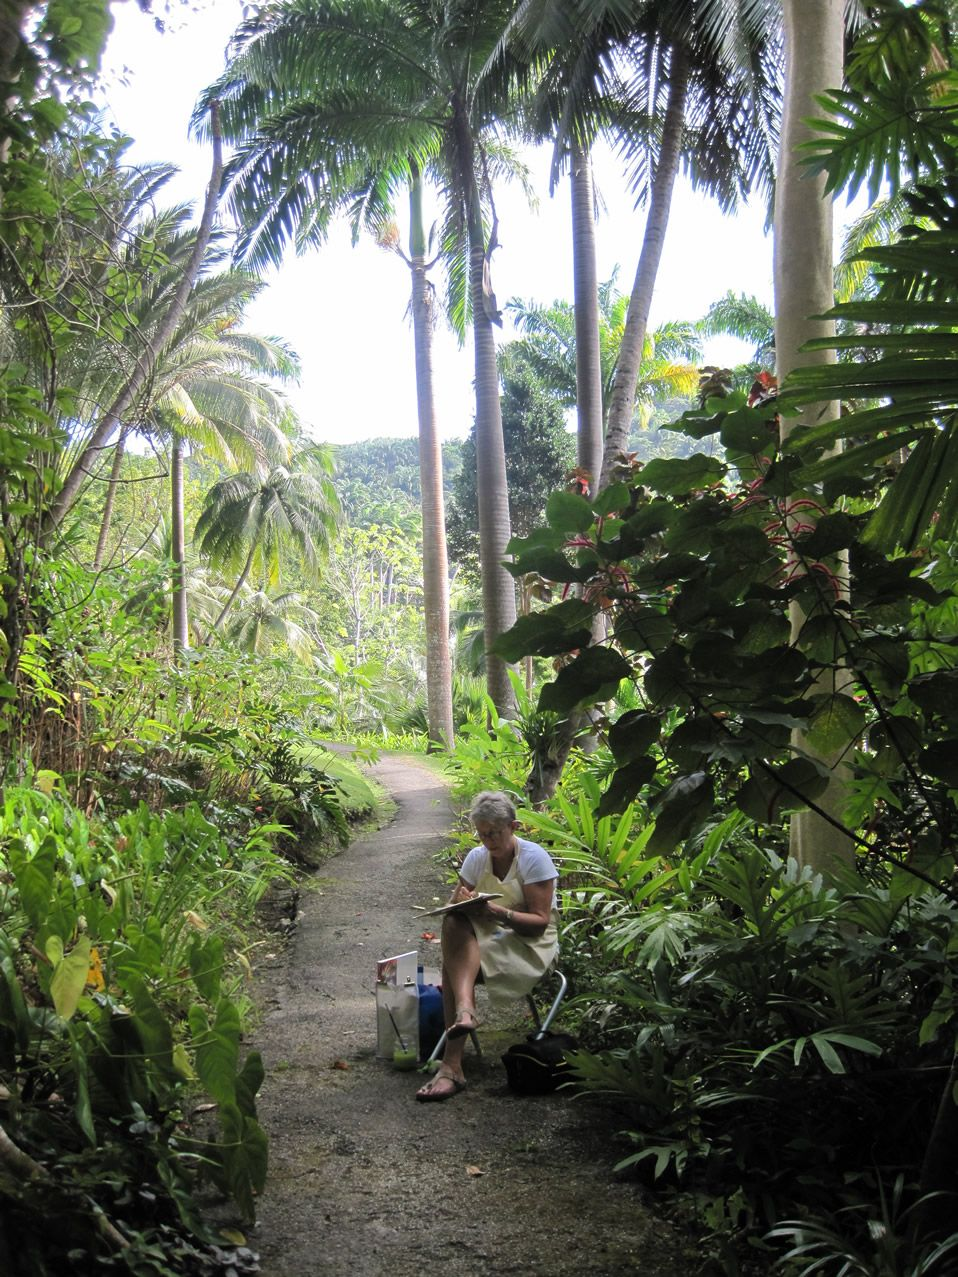 Flower Forest, Barbados; been there, loved the vegetation... soooooo green!